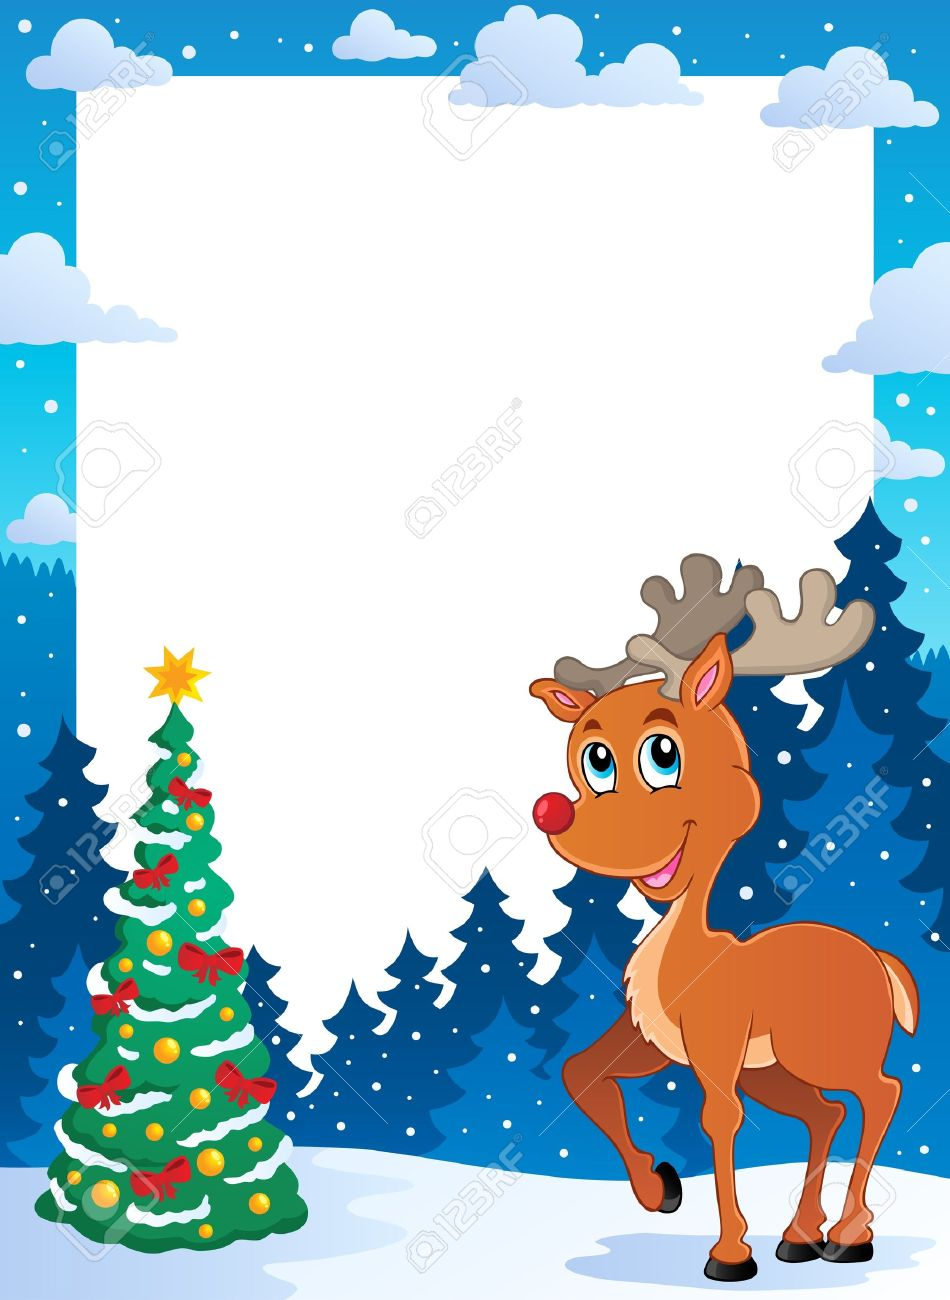 Christmas Theme Frame Royalty Free Cliparts, Vectors, And Stock ...